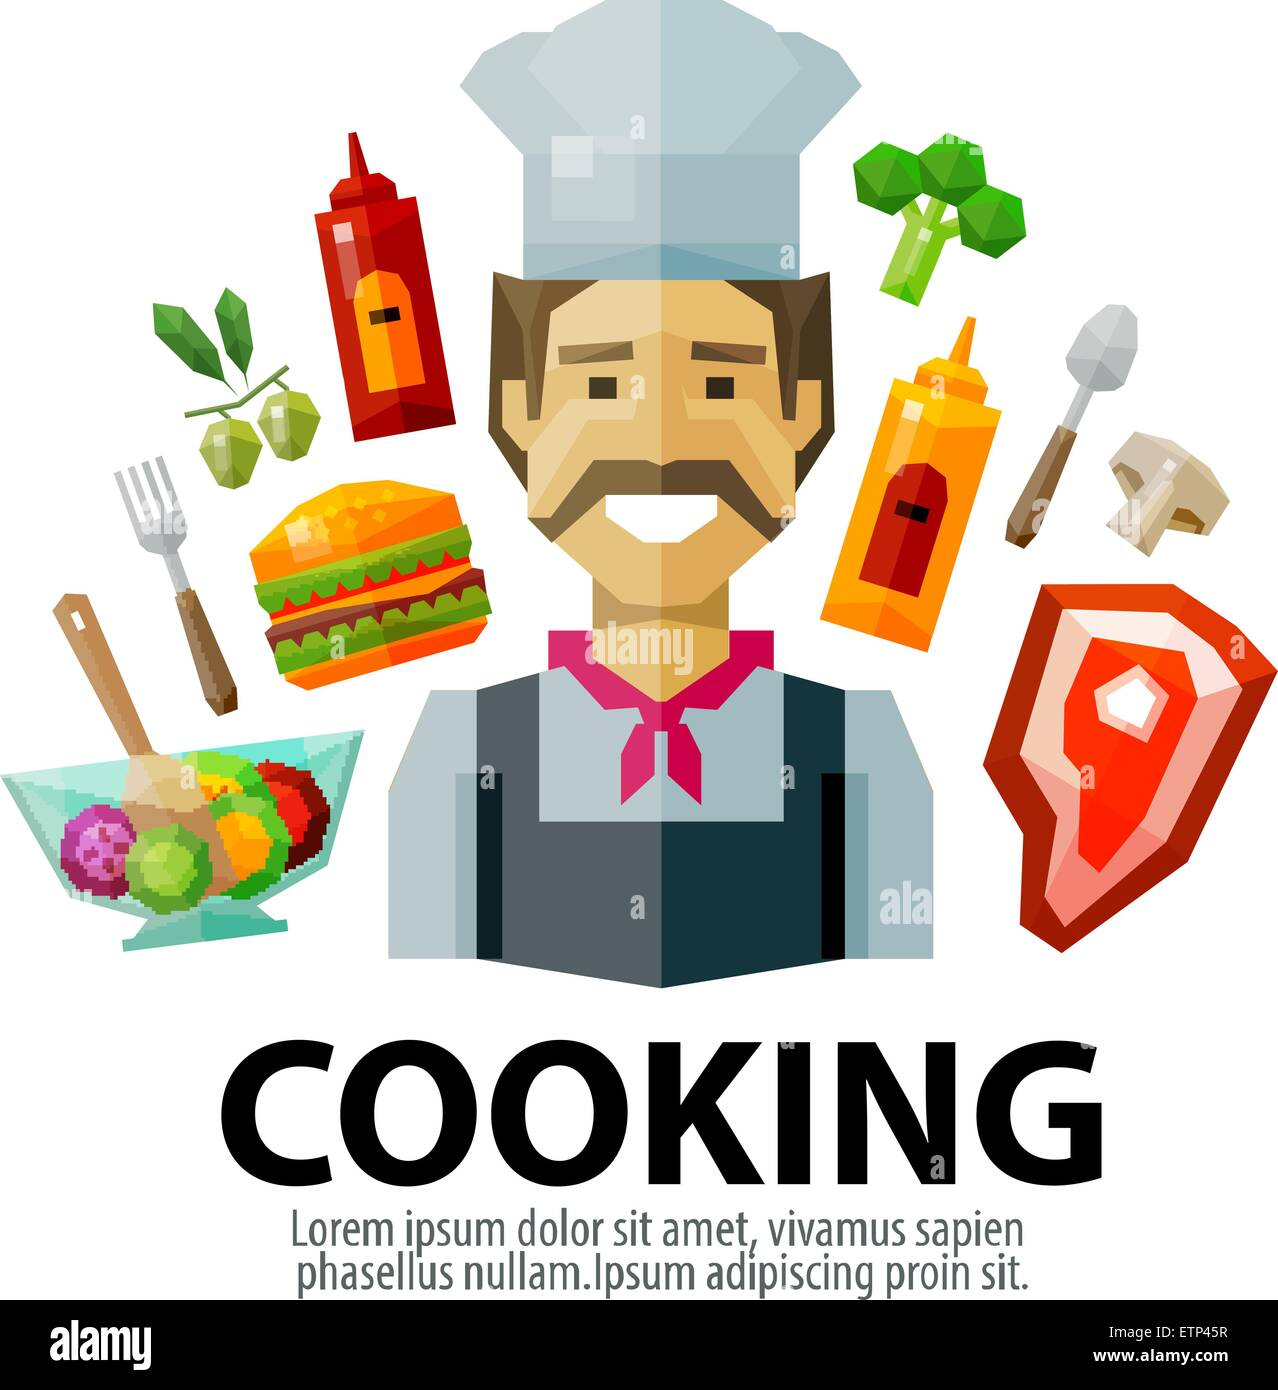 Cooking Vector Logo Design Template Fresh Food Or Chef Cook Icon Stock Vector Image Art Alamy